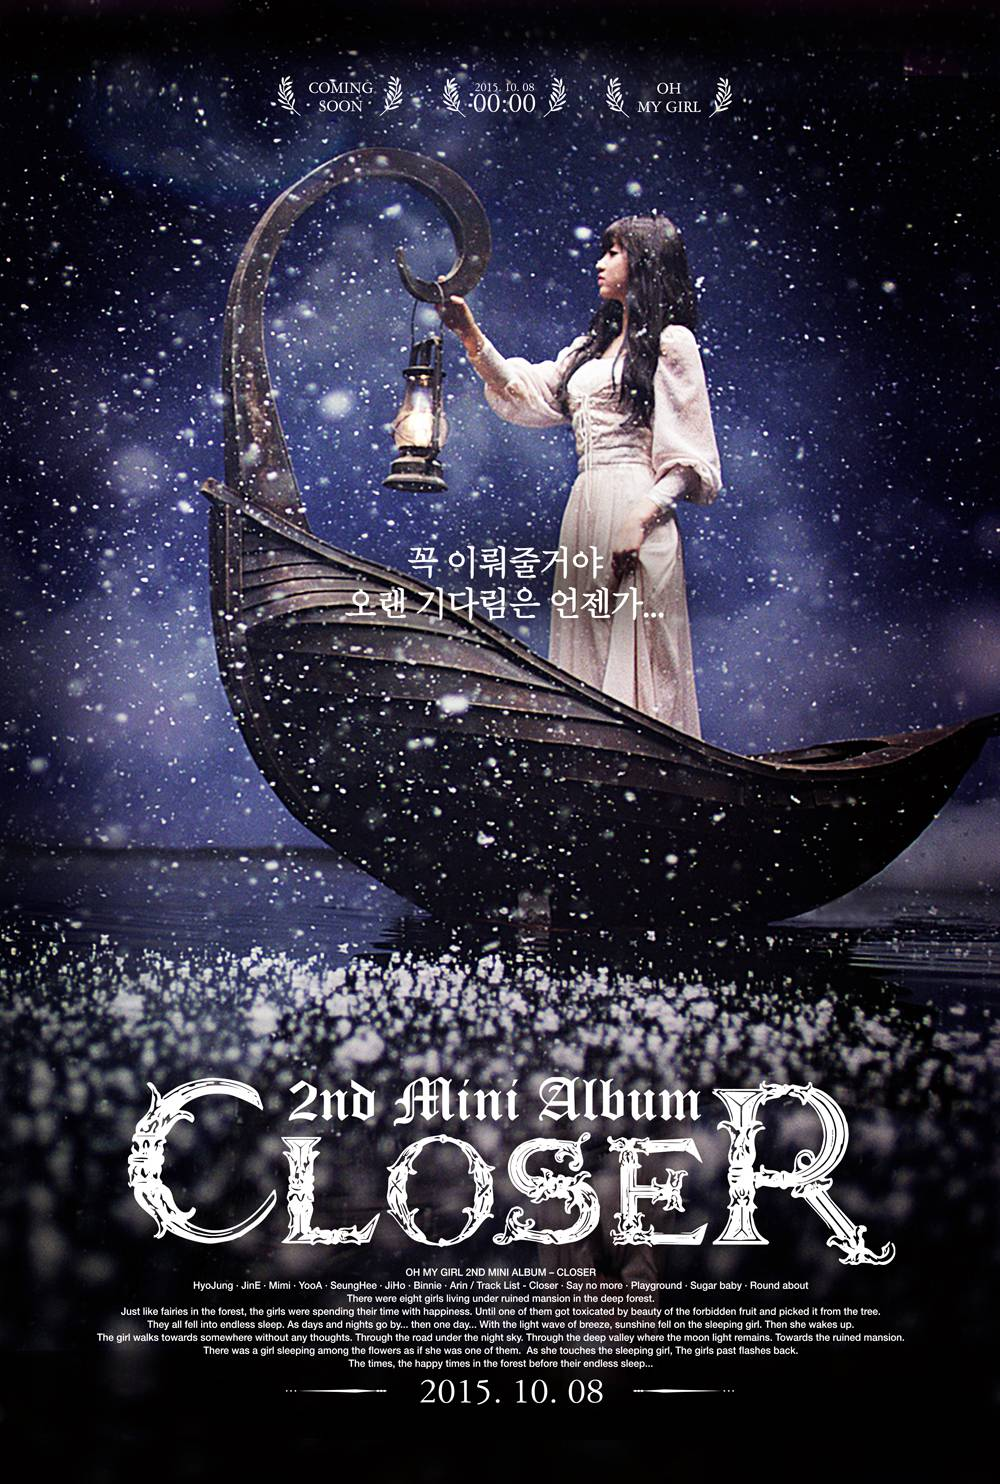 OhMyGirlCloserPoster